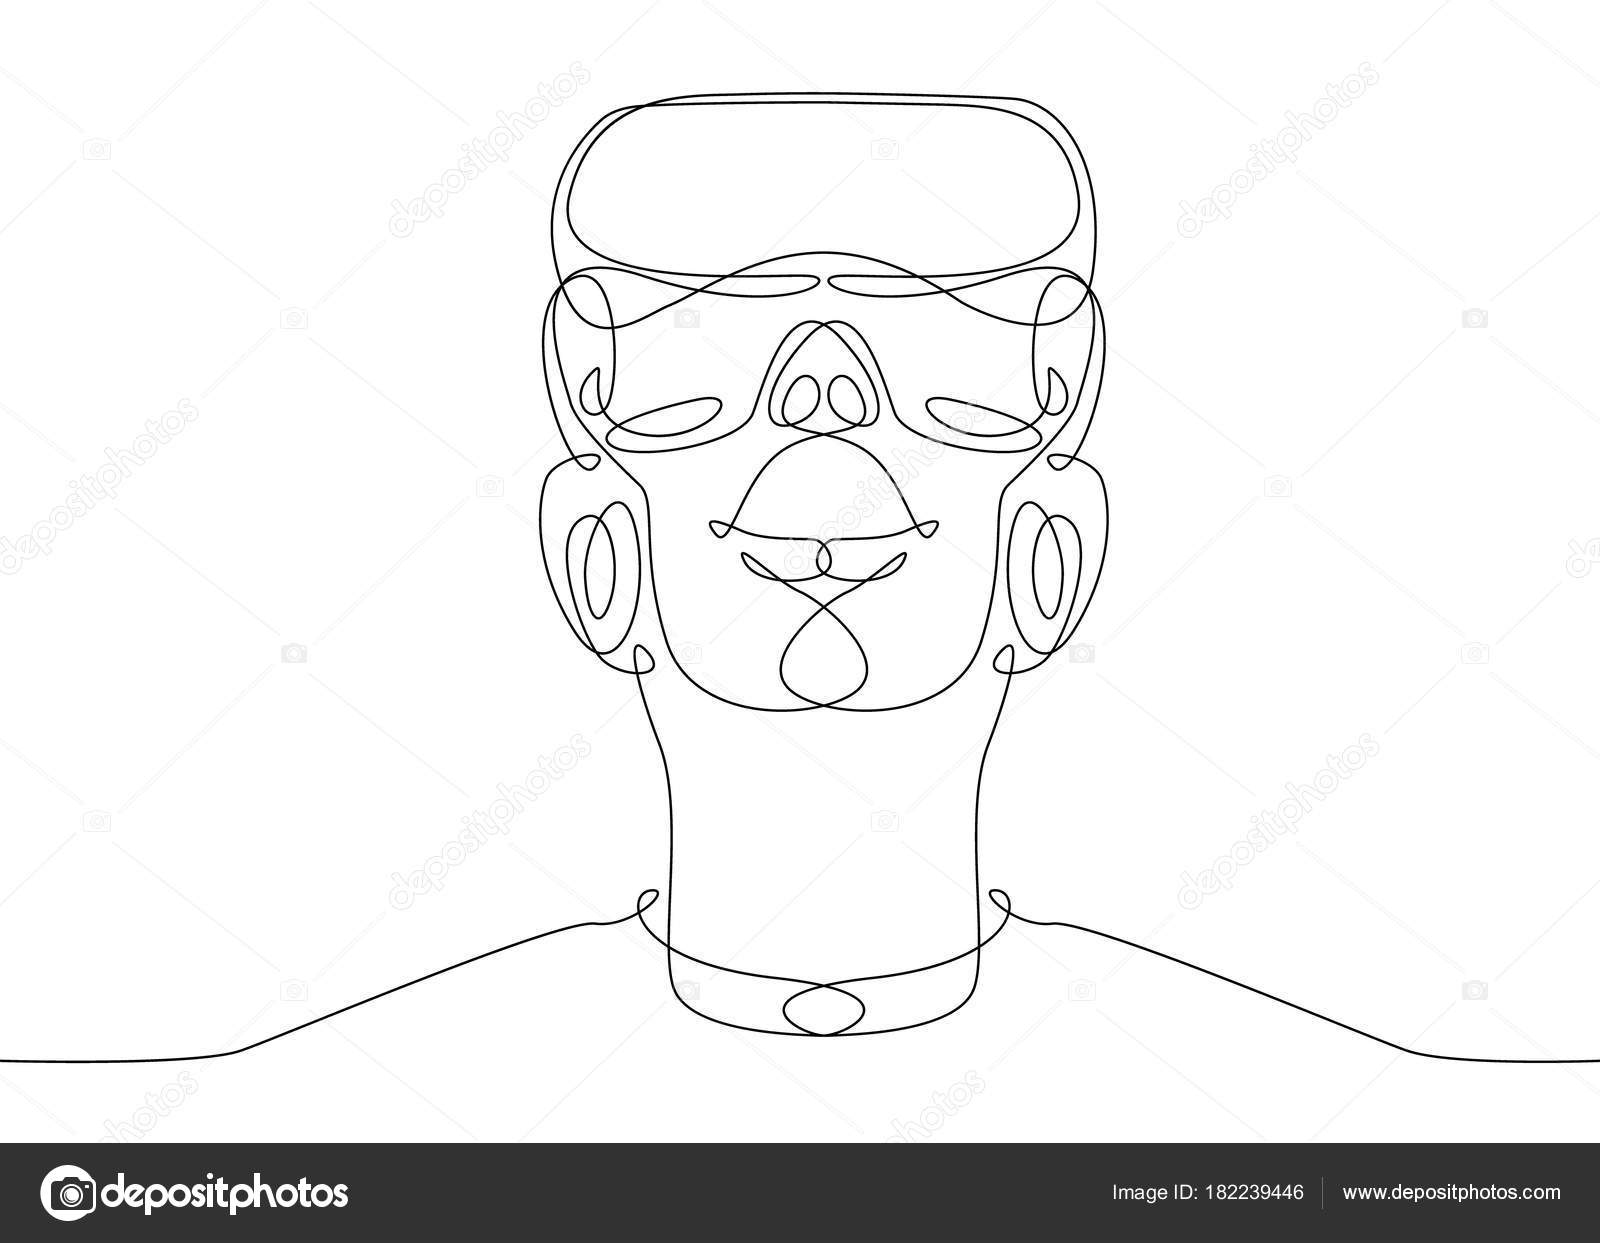 Single Line Text Art : Continuous line drawing man in glasses device virtual reality